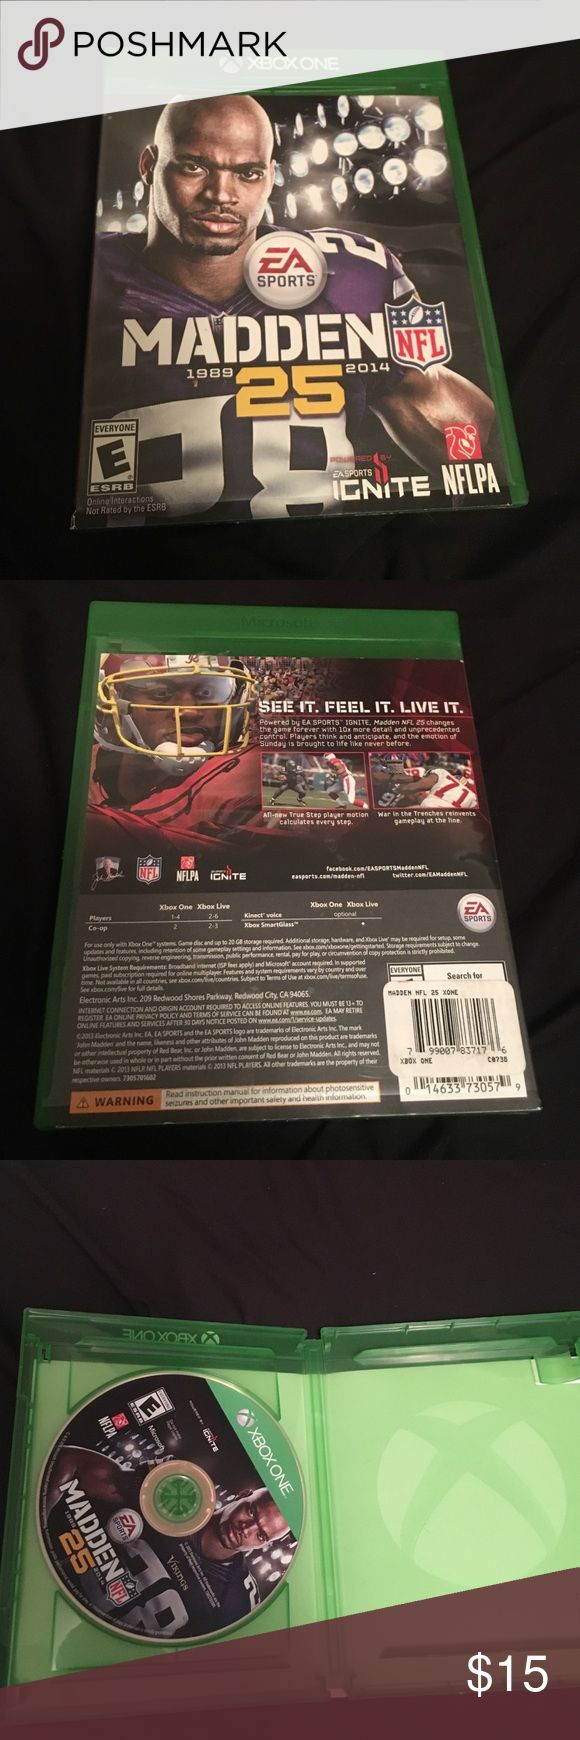 Madden 25 No scratches on the CD. slight scratches on the case. Might trade make an offer. Xbox One Other